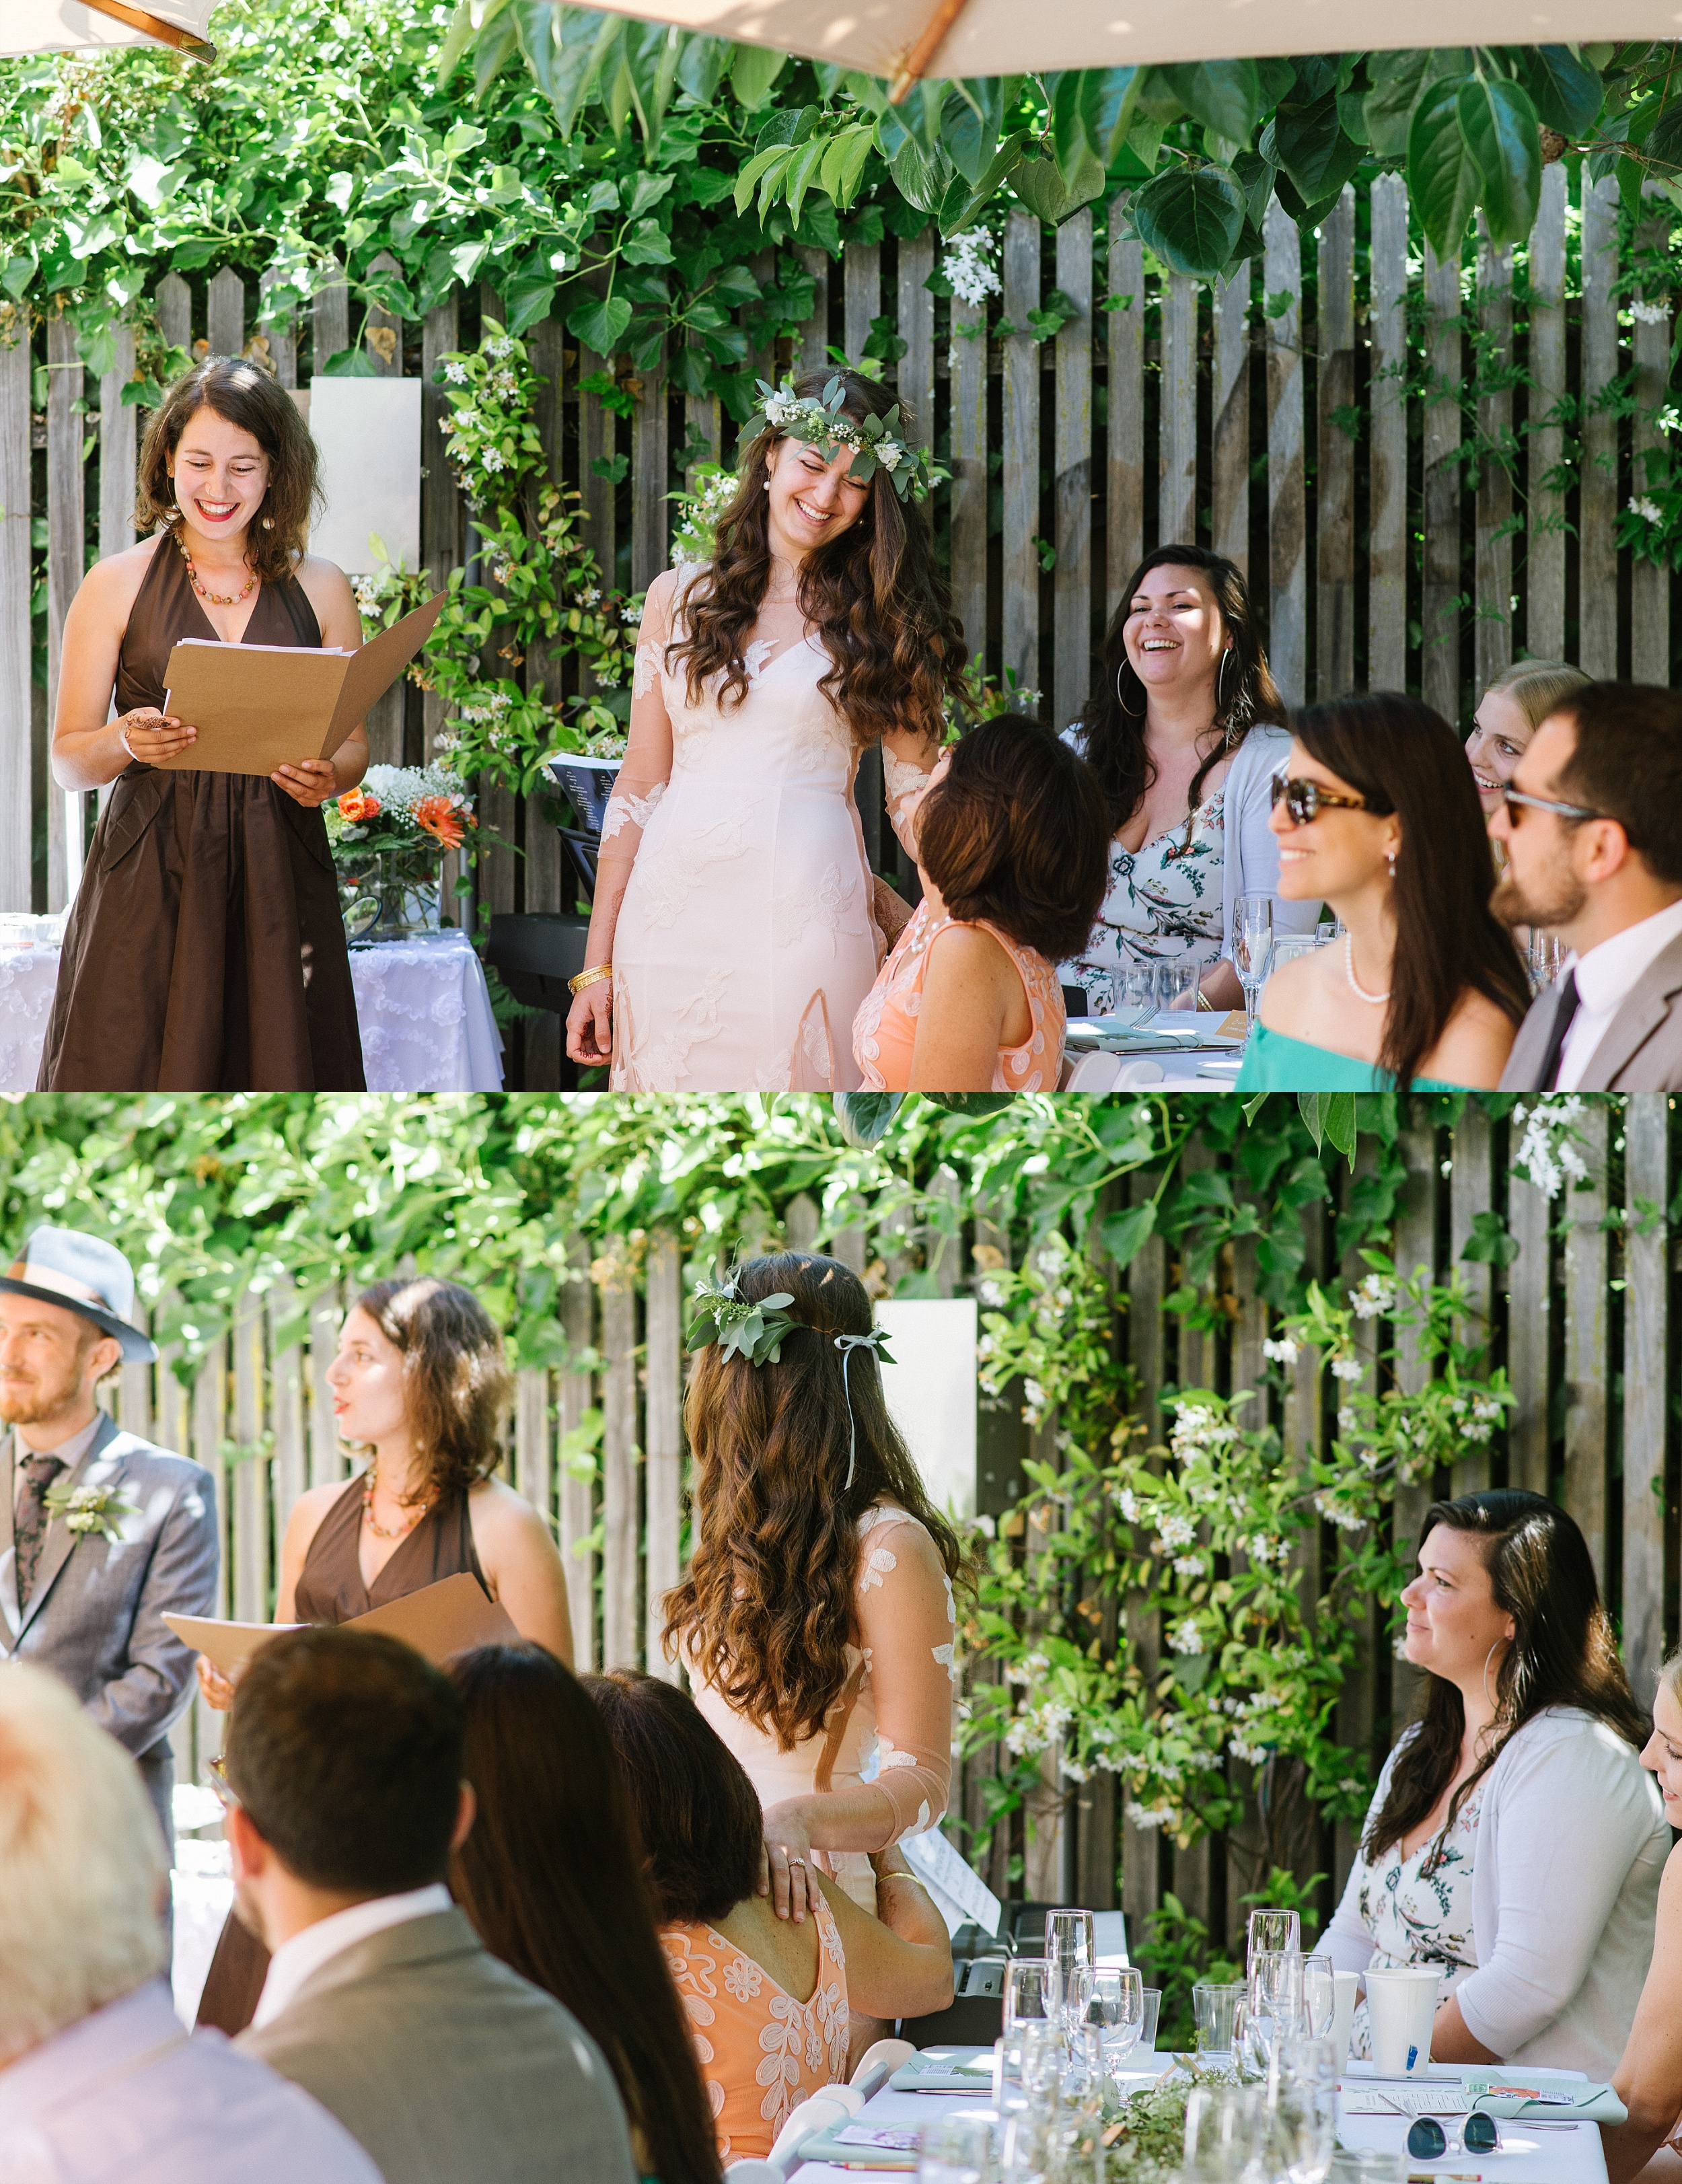 oakland_backyard__redwoods_wedding_chelseadierphotography_0021.jpg